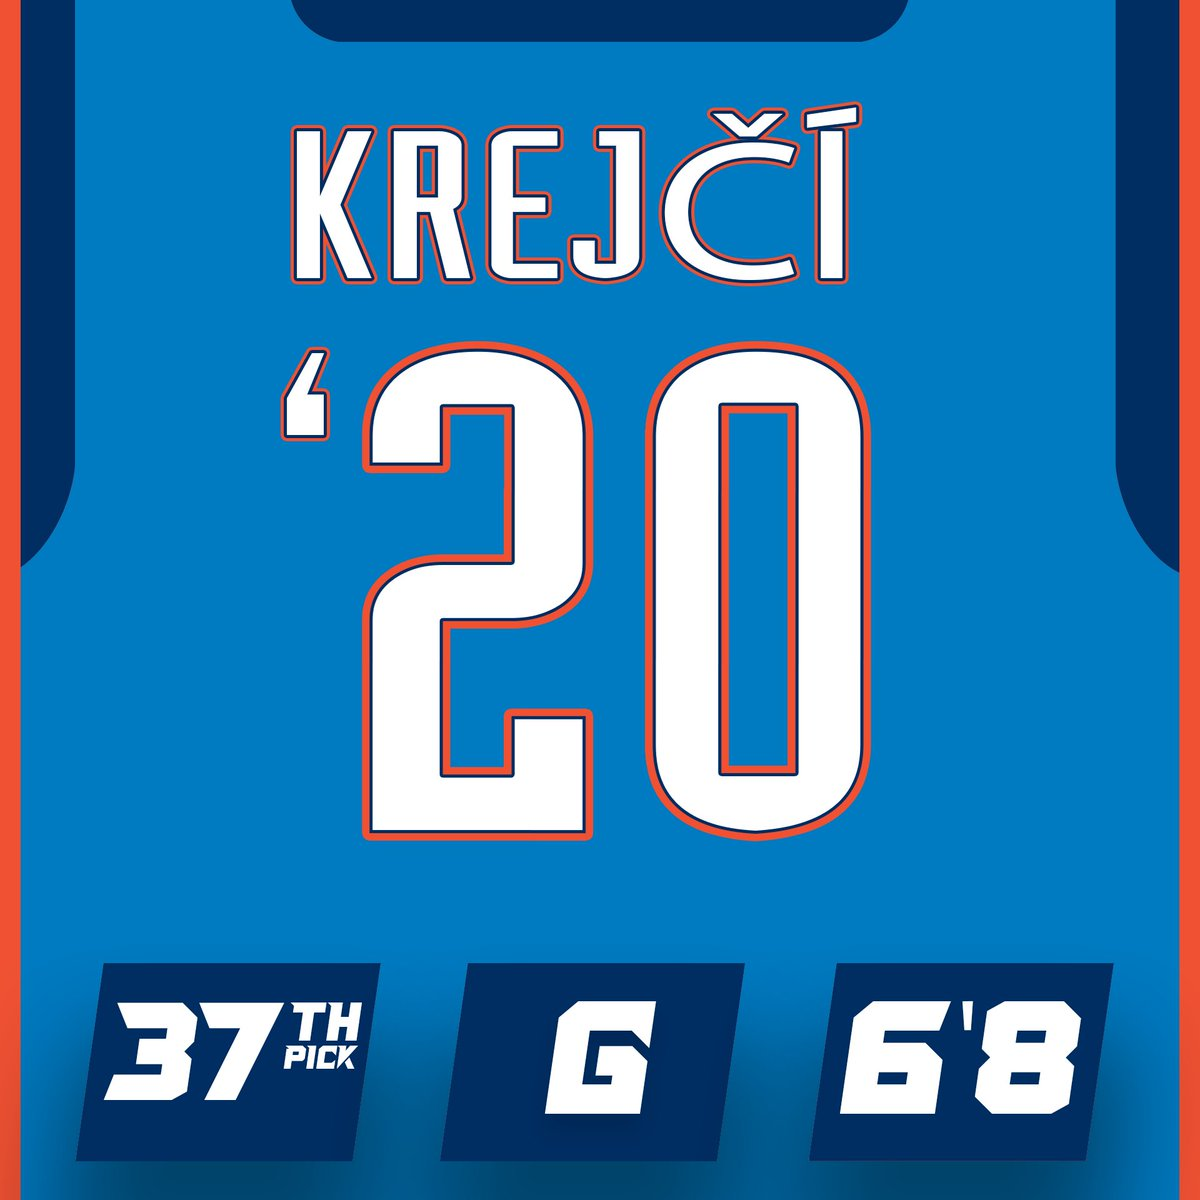 It's official! The Thunder have acquired the draft rights to the 37th overall pick, Vít Krejčí 😃  @okcthunder | #ThunderUp https://t.co/qCIDyjKU44